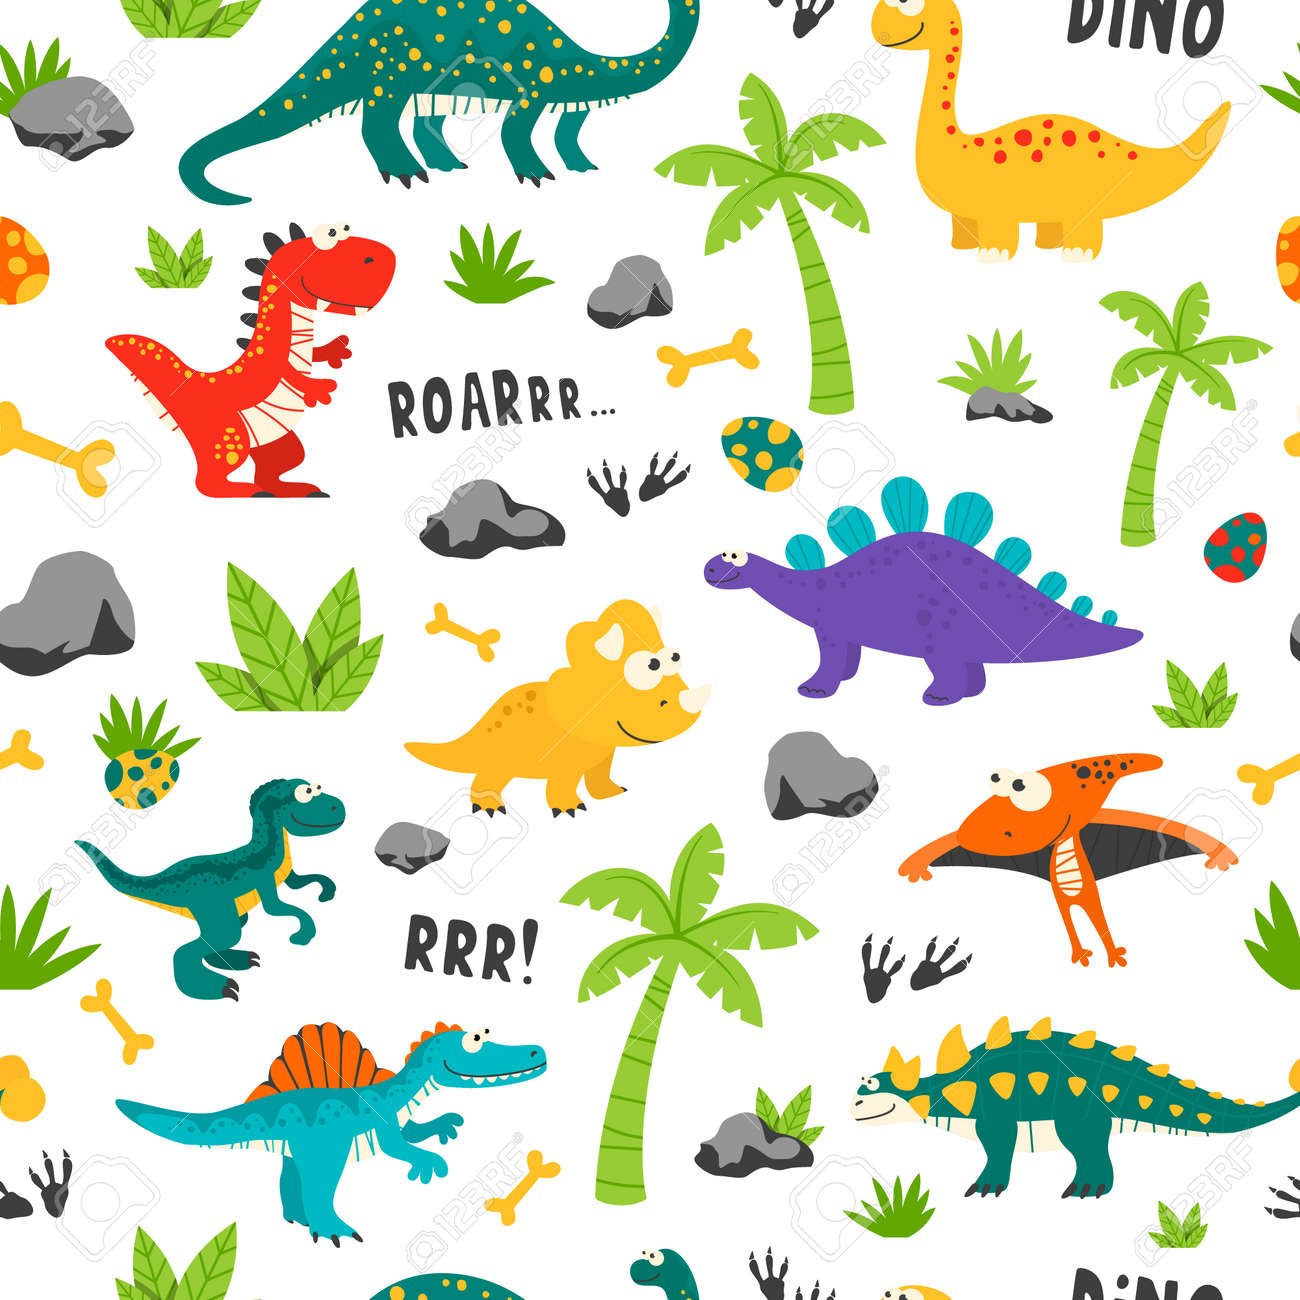 Vector Seamless Pattern. Cute and Funny Flat Dinosaurs - 173639555